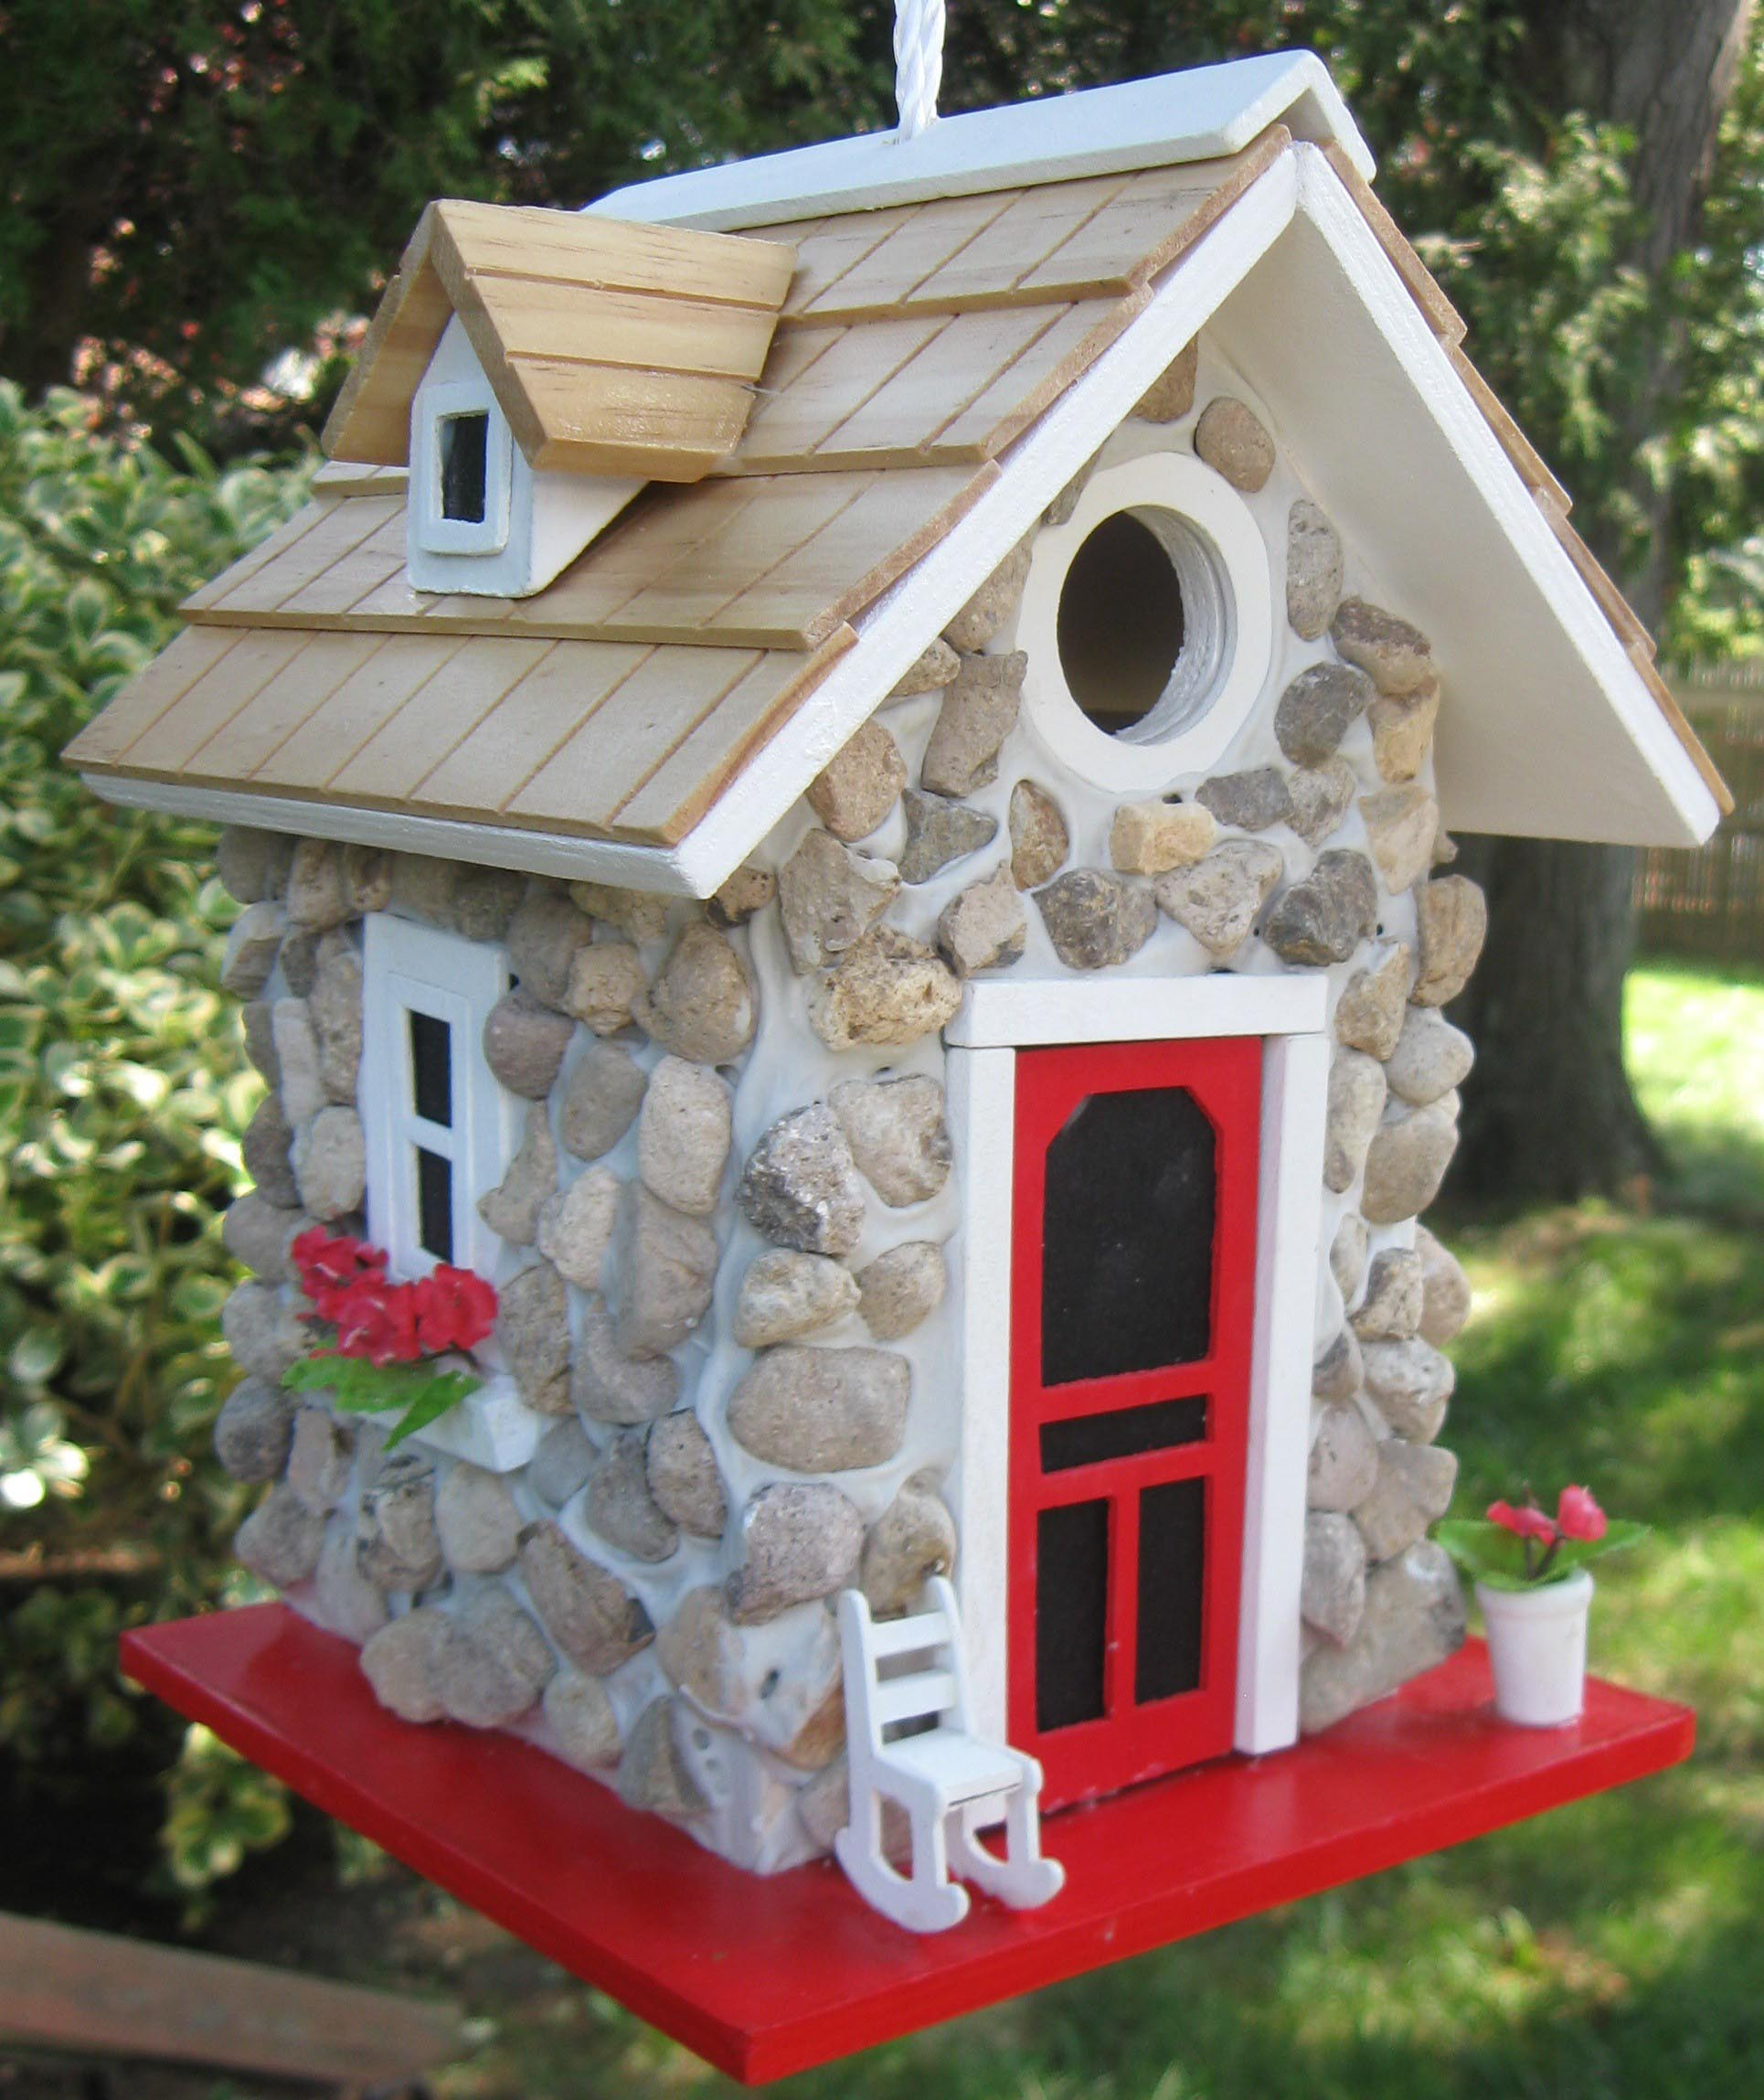 How to build fancy bird houses easy way birdcage design for Types of birdhouses for birds